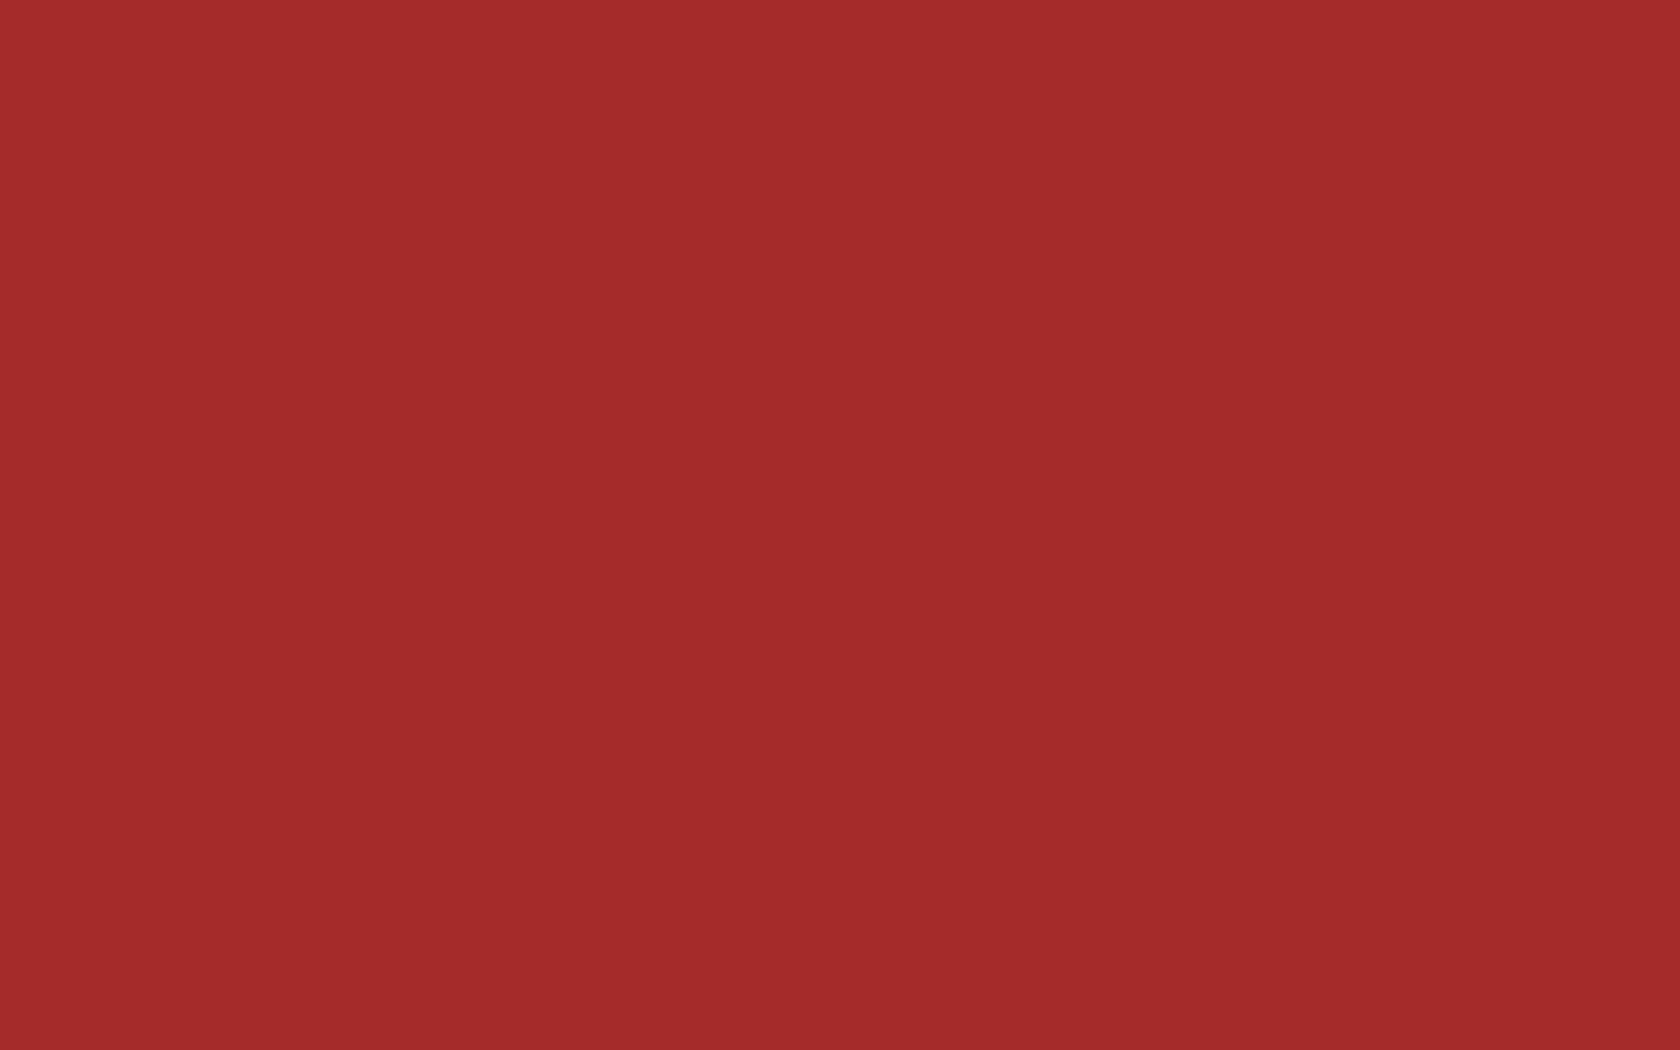 1680x1050 Red-brown Solid Color Background